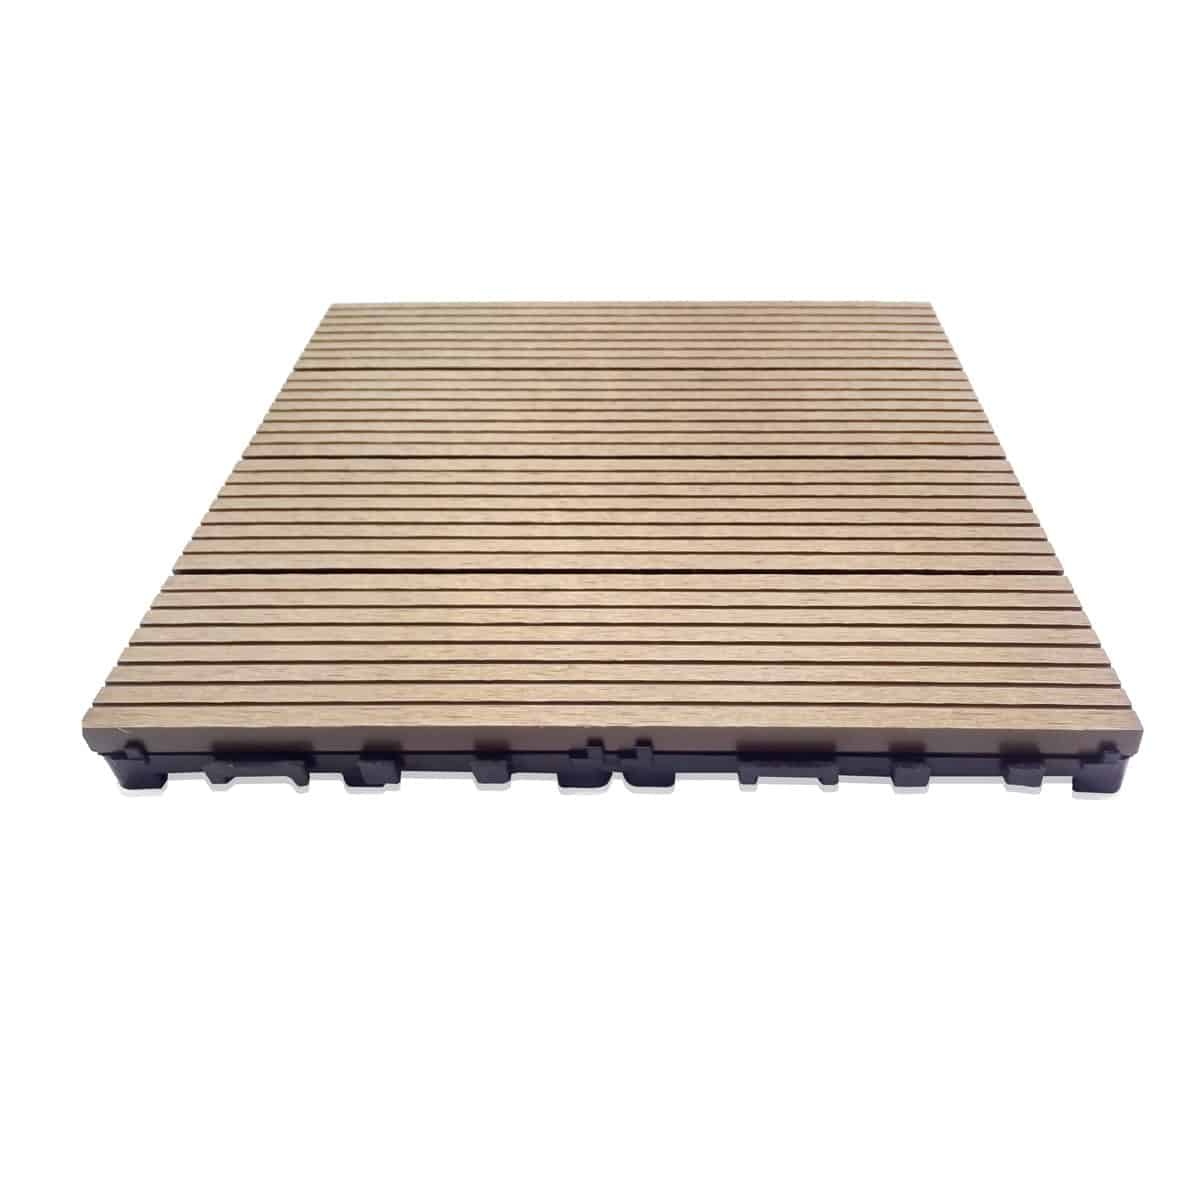 Composite Deck Tiles Dura Tile Wood Plastic Composite Wpc Deck Tiles Teak